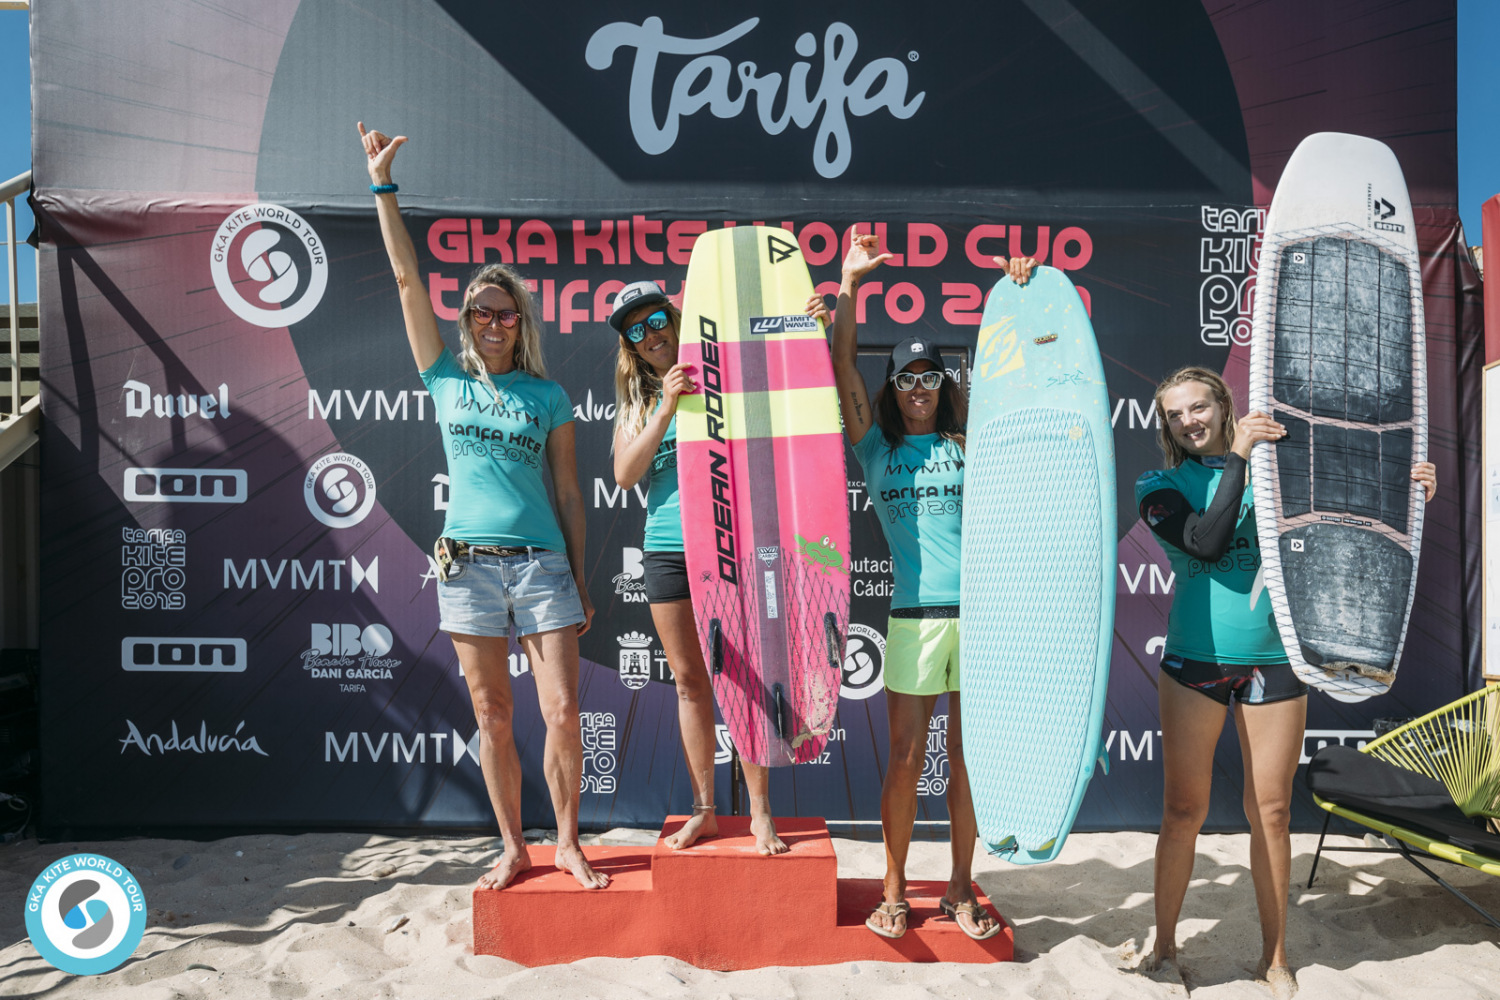 GKA_KWT_Surf_Tarifa_Ydwer_Day_03_1372